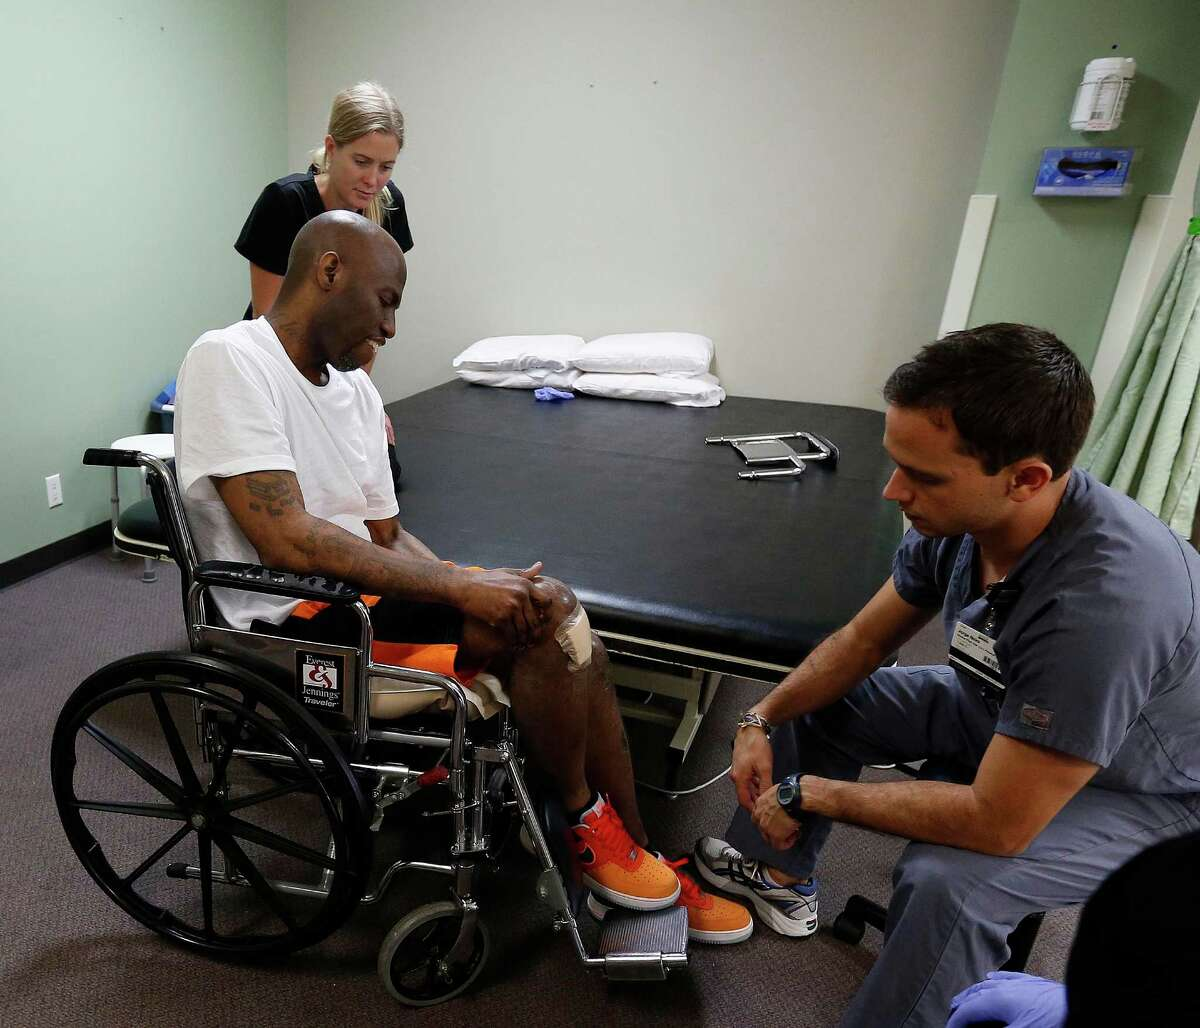 Quincy Davis works with physical therapist, Jorge Neira, and OTR student, Lindsay Eckert at the Quentin Mease Community Hospital, Friday, Aug. 12, 2016, in Houston. Davis and his family say that he was denied proper medical treatment during his two years in the Waller County Jail, where he was awaiting trial on charges for drugs and for assaulting police. After a month in two hospitals, he is now at this rehab hospital.